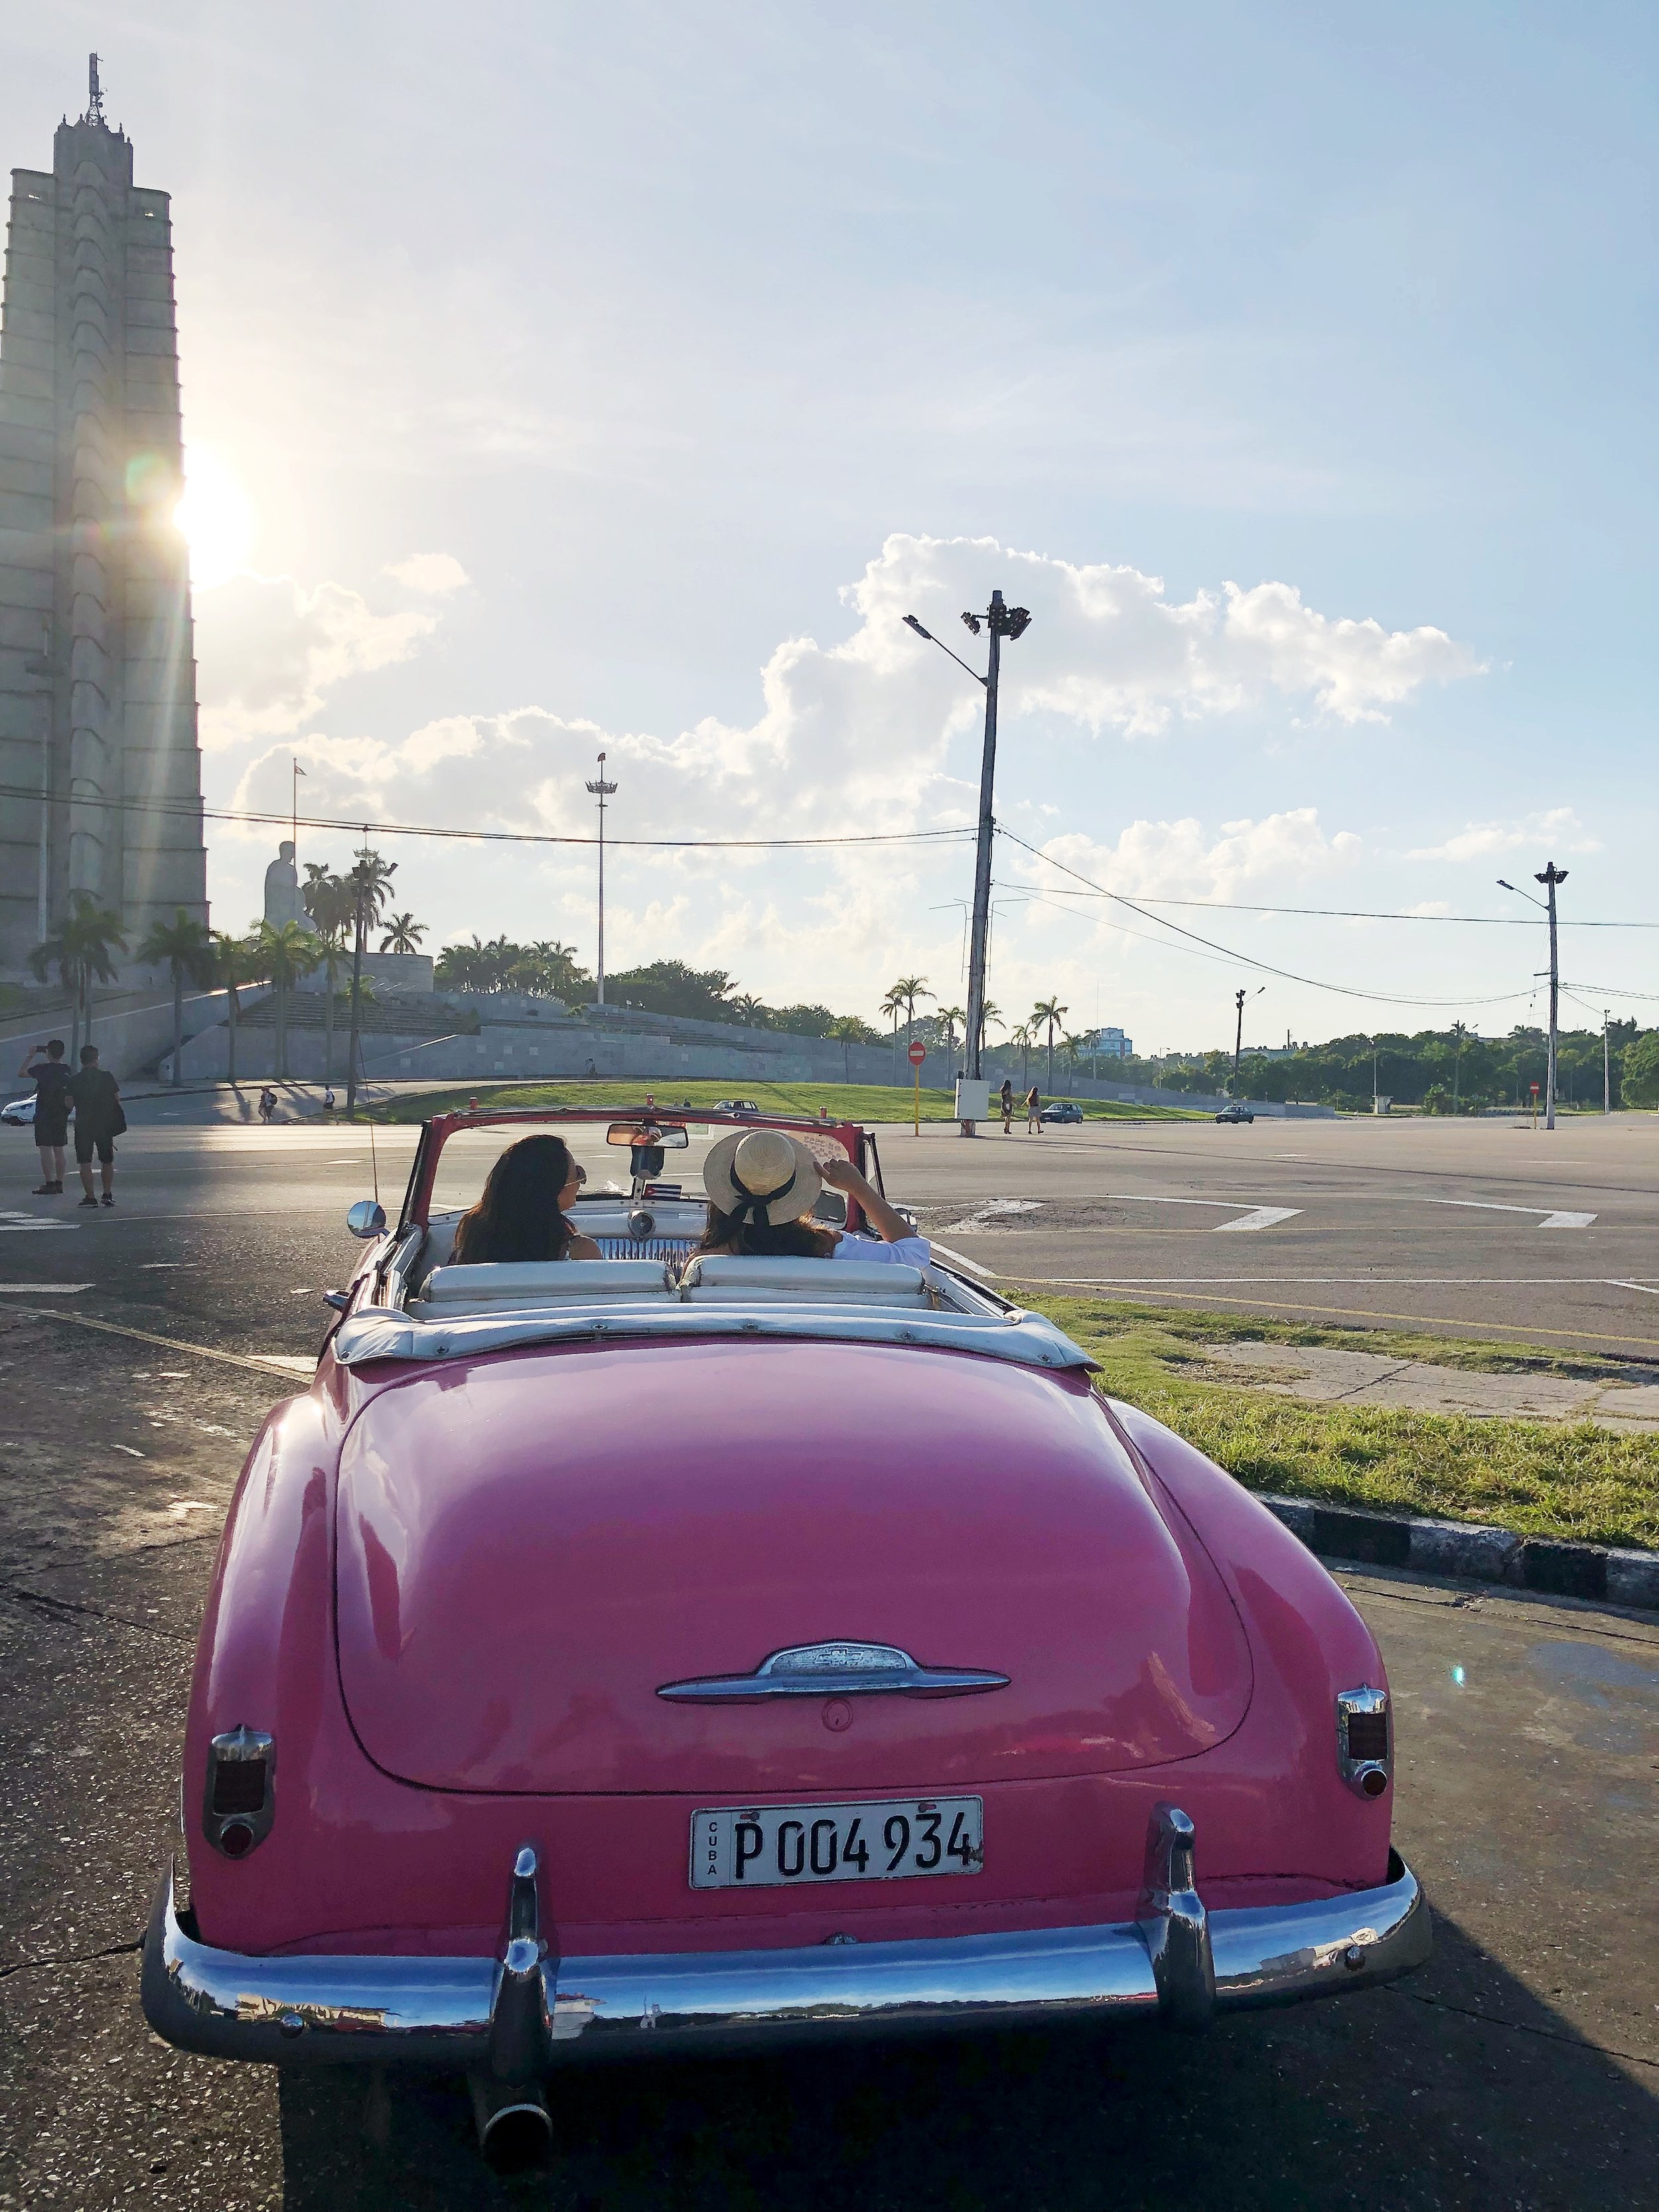 In our pink classic convertible